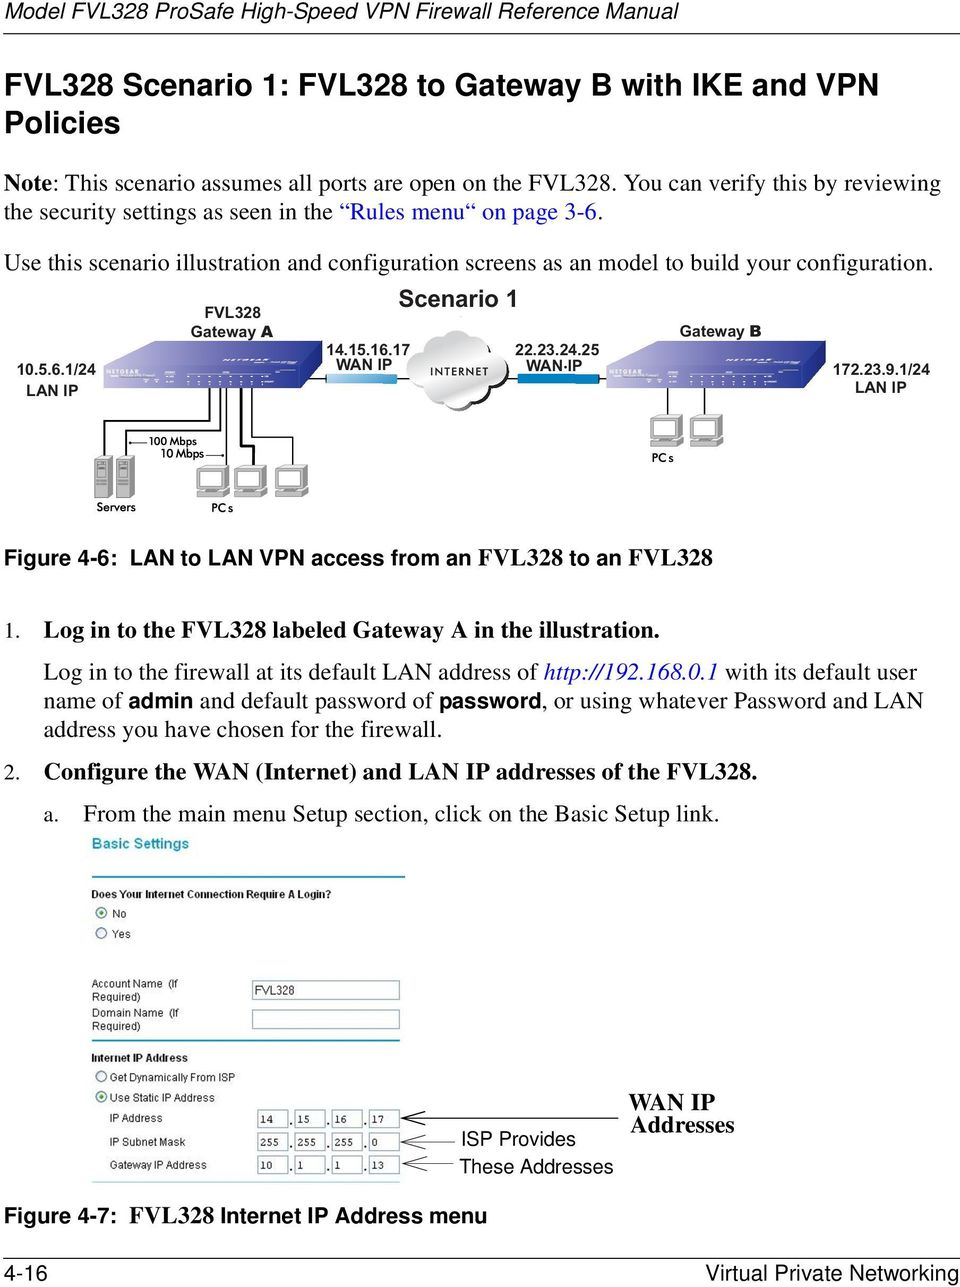 15.16.17 22.23.24.25 WAN IP WAN IP 172.23.9.1/24 LAN IP Figure 4-6: LAN to LAN VPN access from an FVL328 to an FVL328 1. Log in to the FVL328 labeled Gateway A in the illustration.